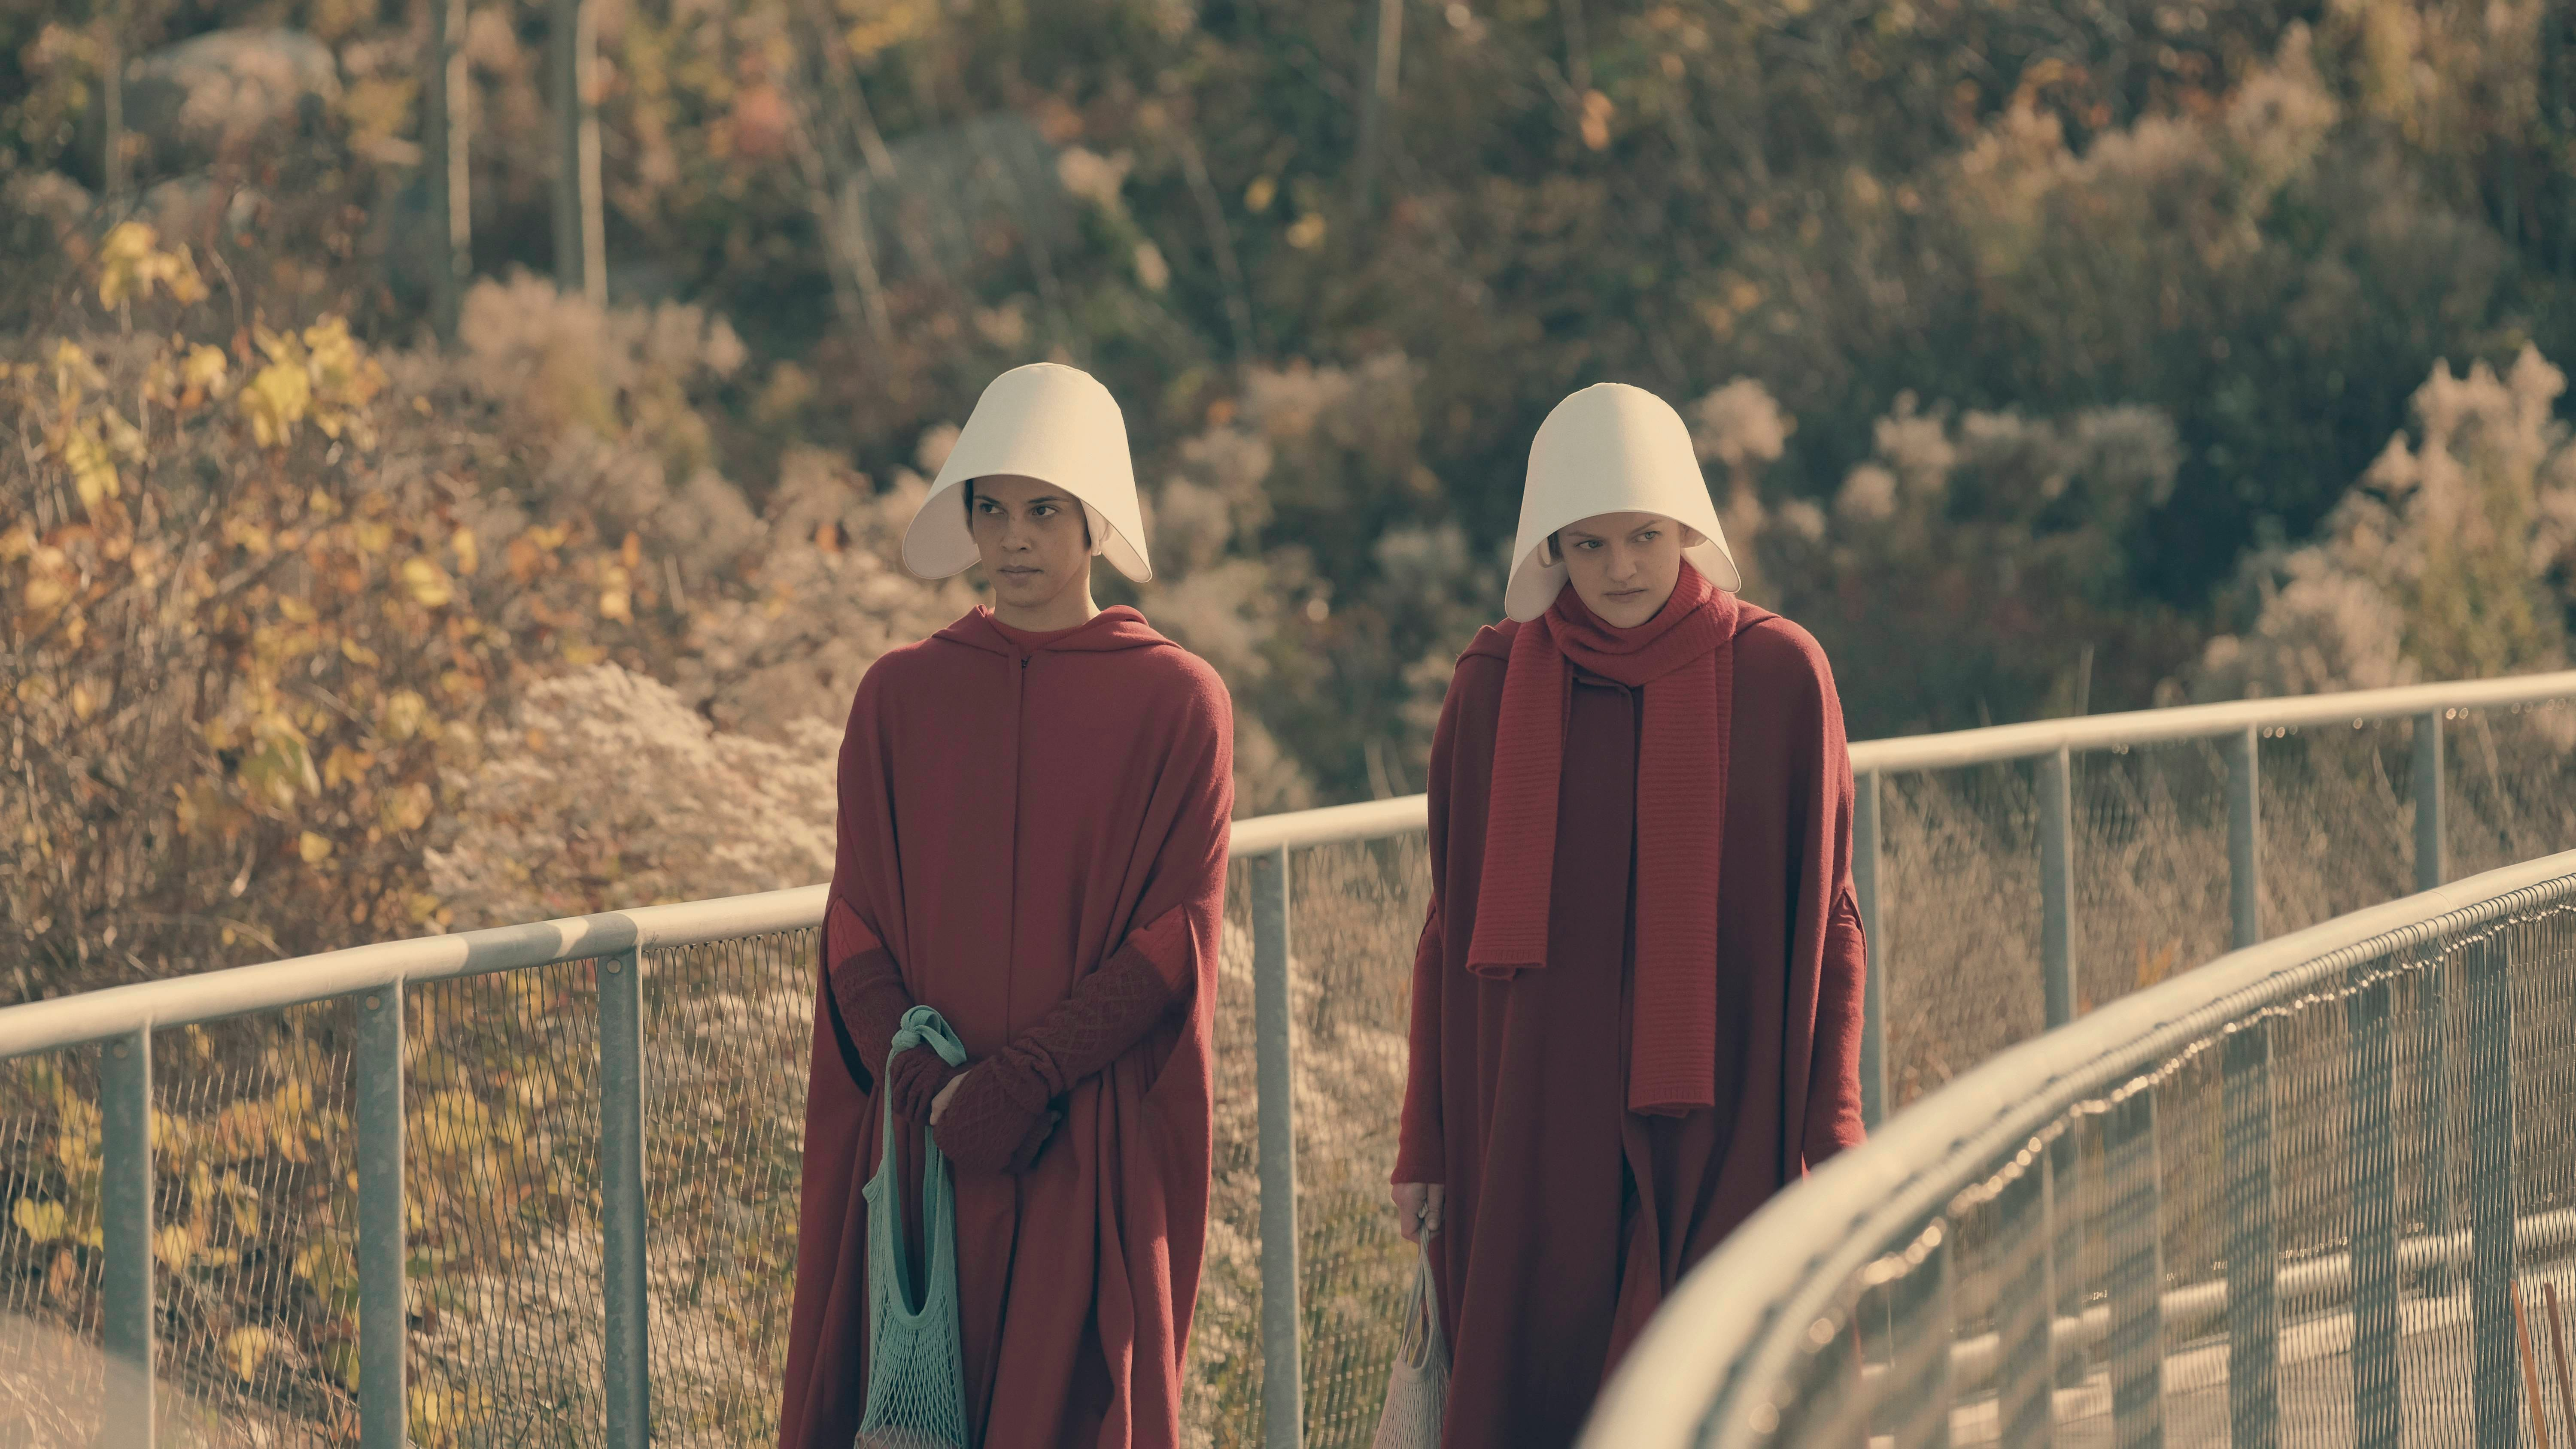 Sexy 'Handmaid's Tale' Halloween costume sparks outrage